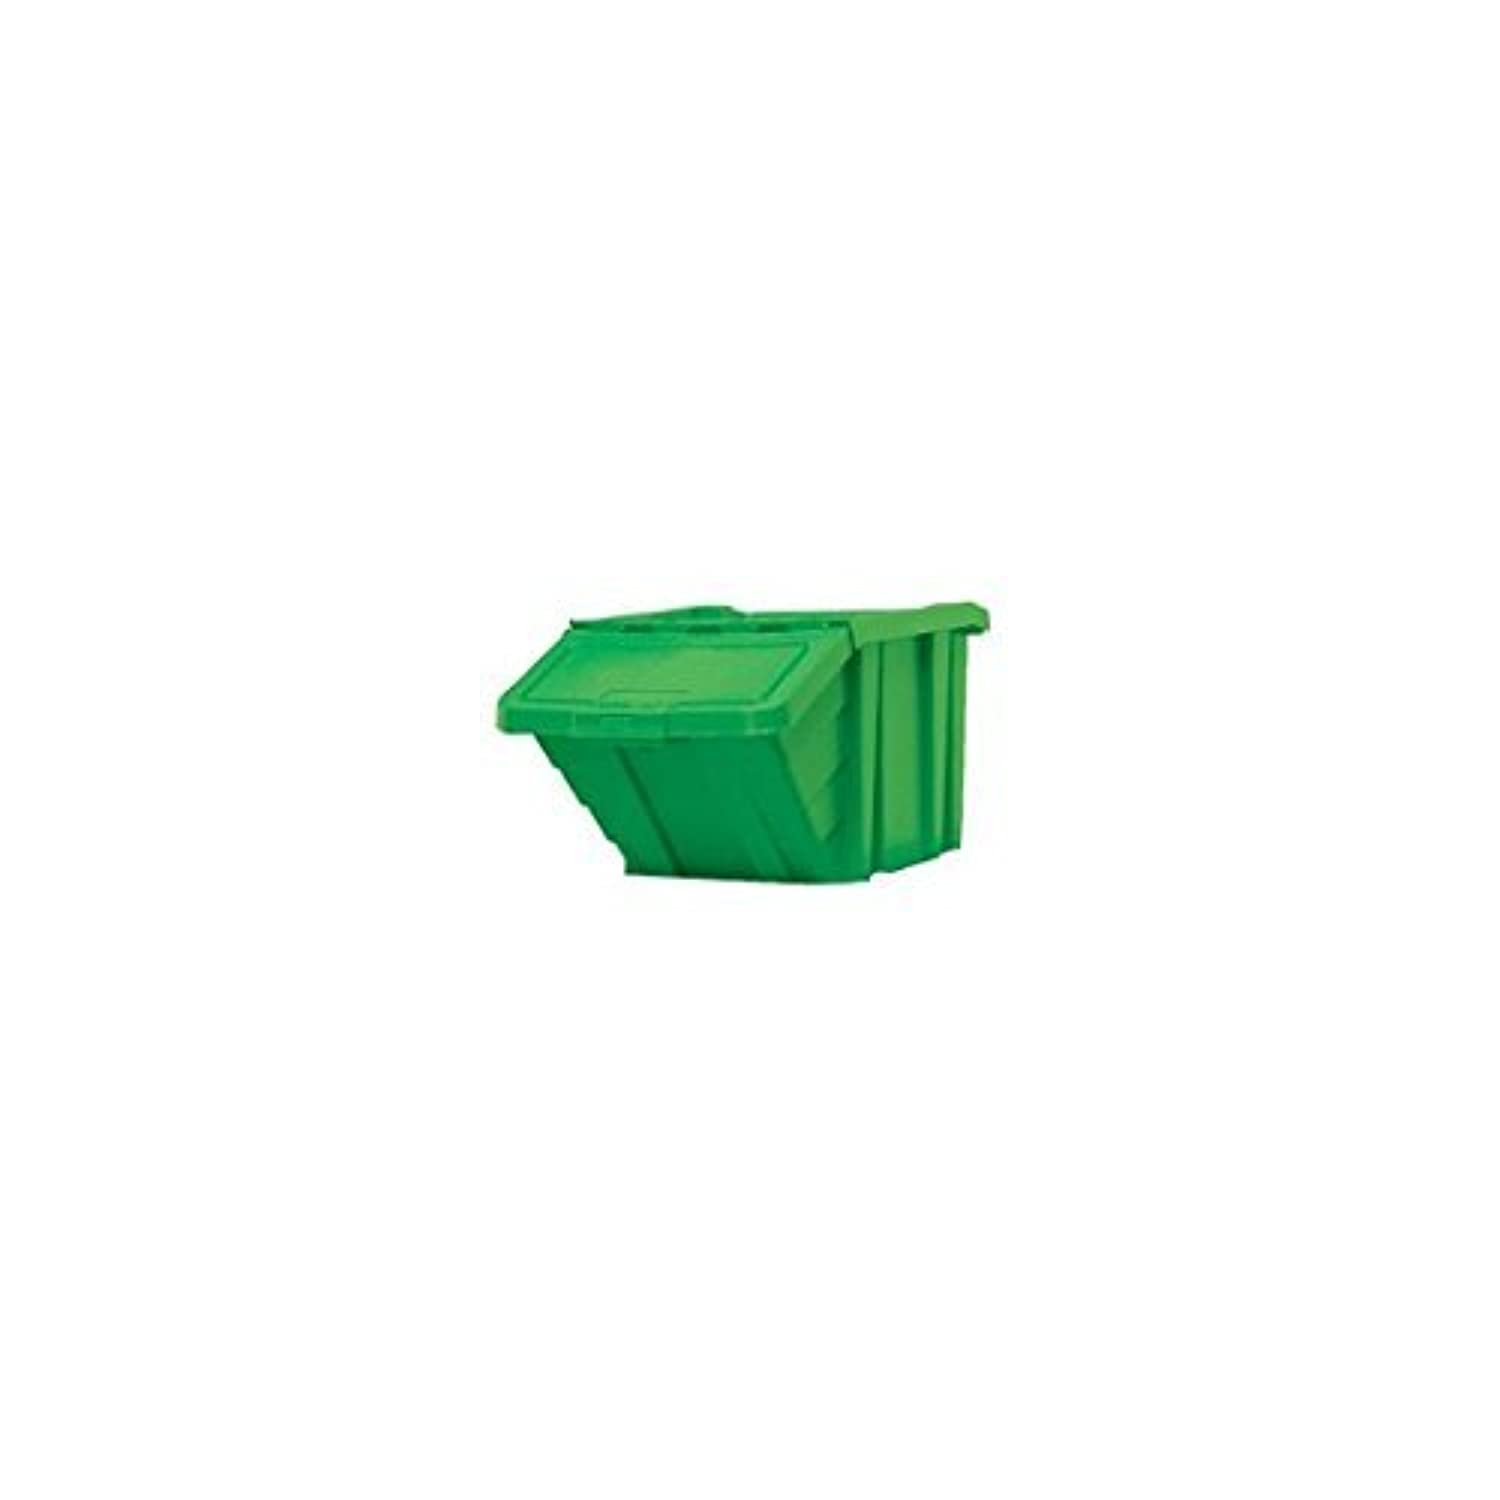 Heavy Duty Storage Bin with Lid Green 369046 by Slingsby Virtual Stock